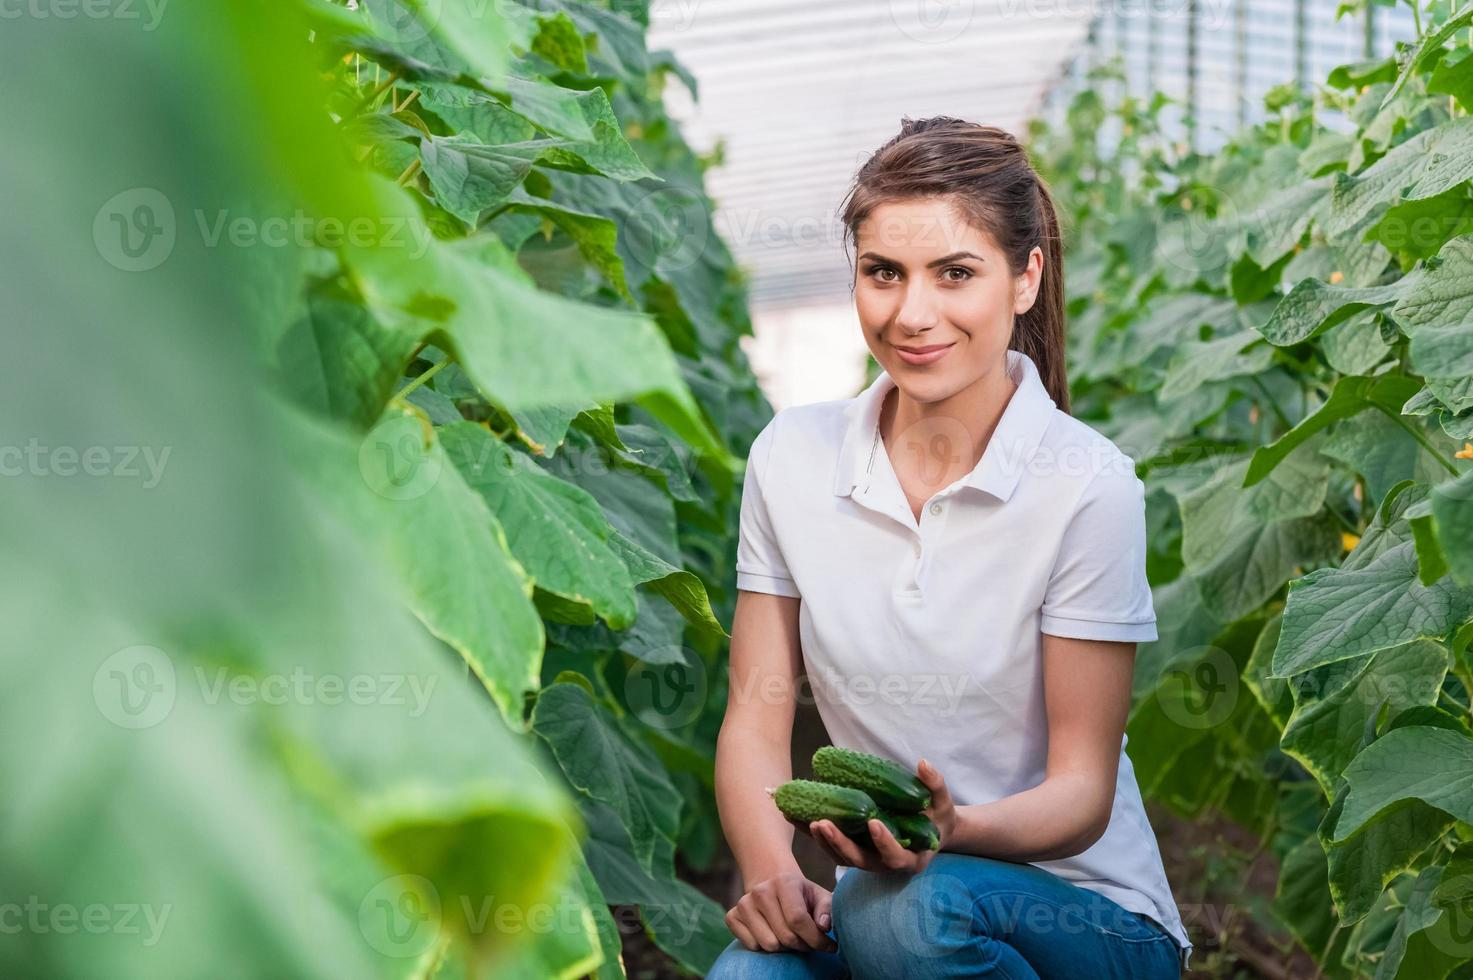 Portrait of young female agriculture worker photo